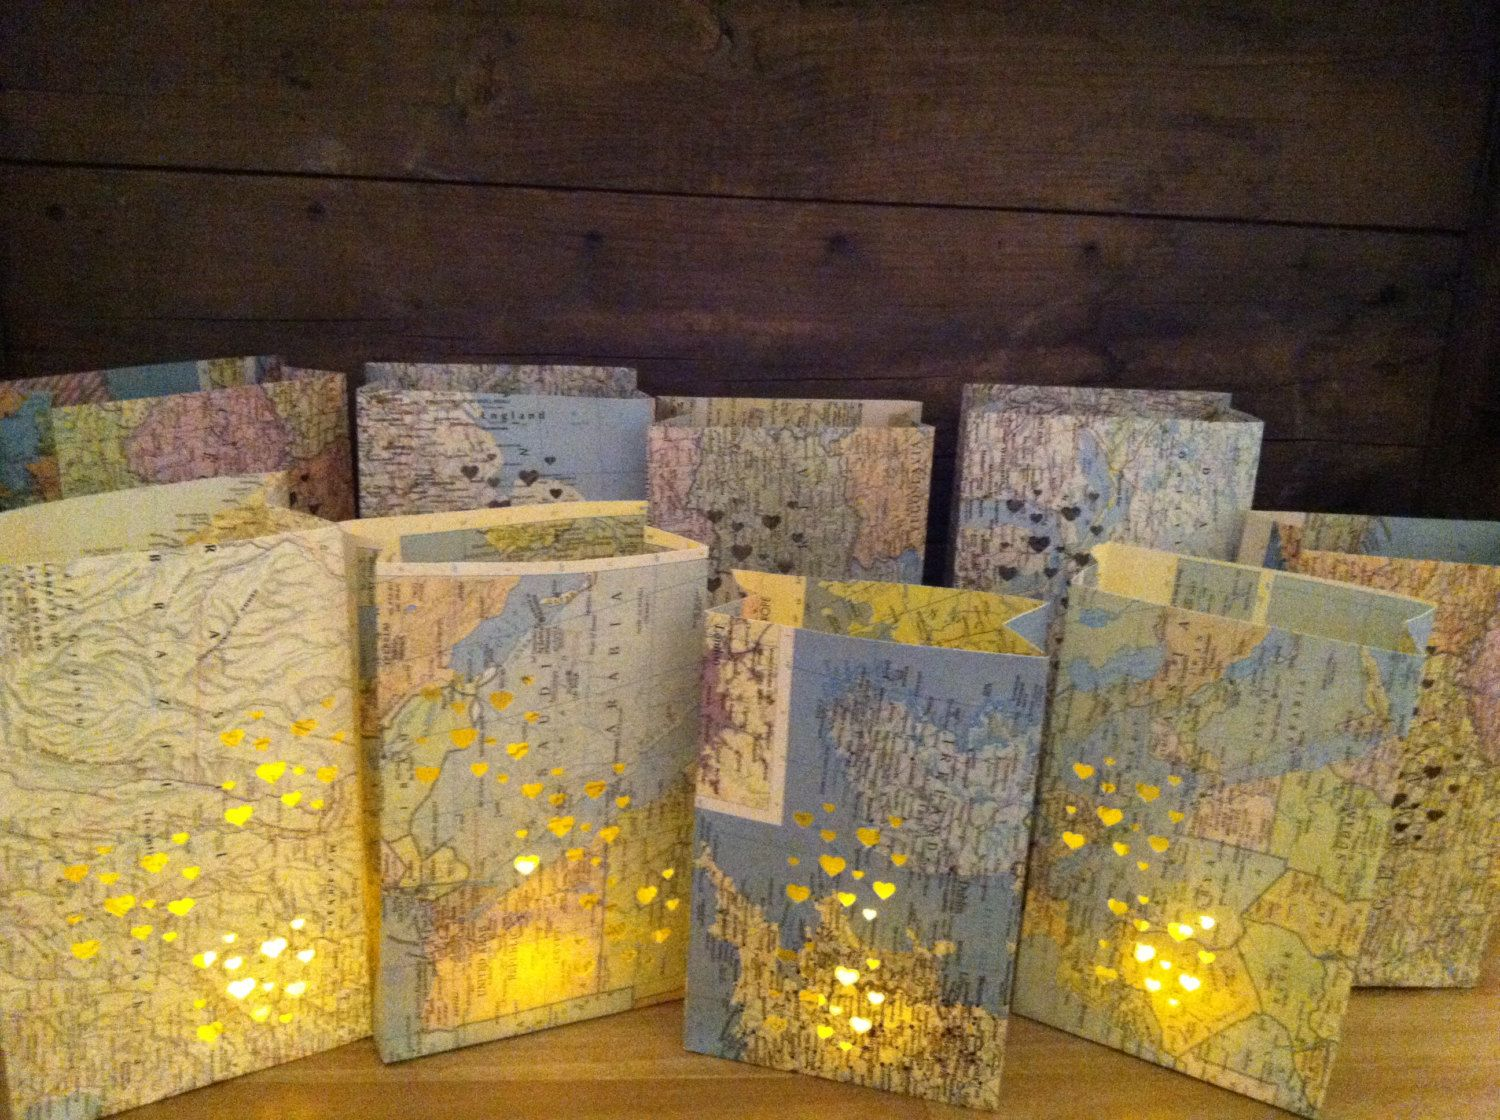 20 small map luminaries wedding decor travel theme by oldendesigns 20 small map luminaries wedding decor travel theme by oldendesigns 20000 junglespirit Image collections